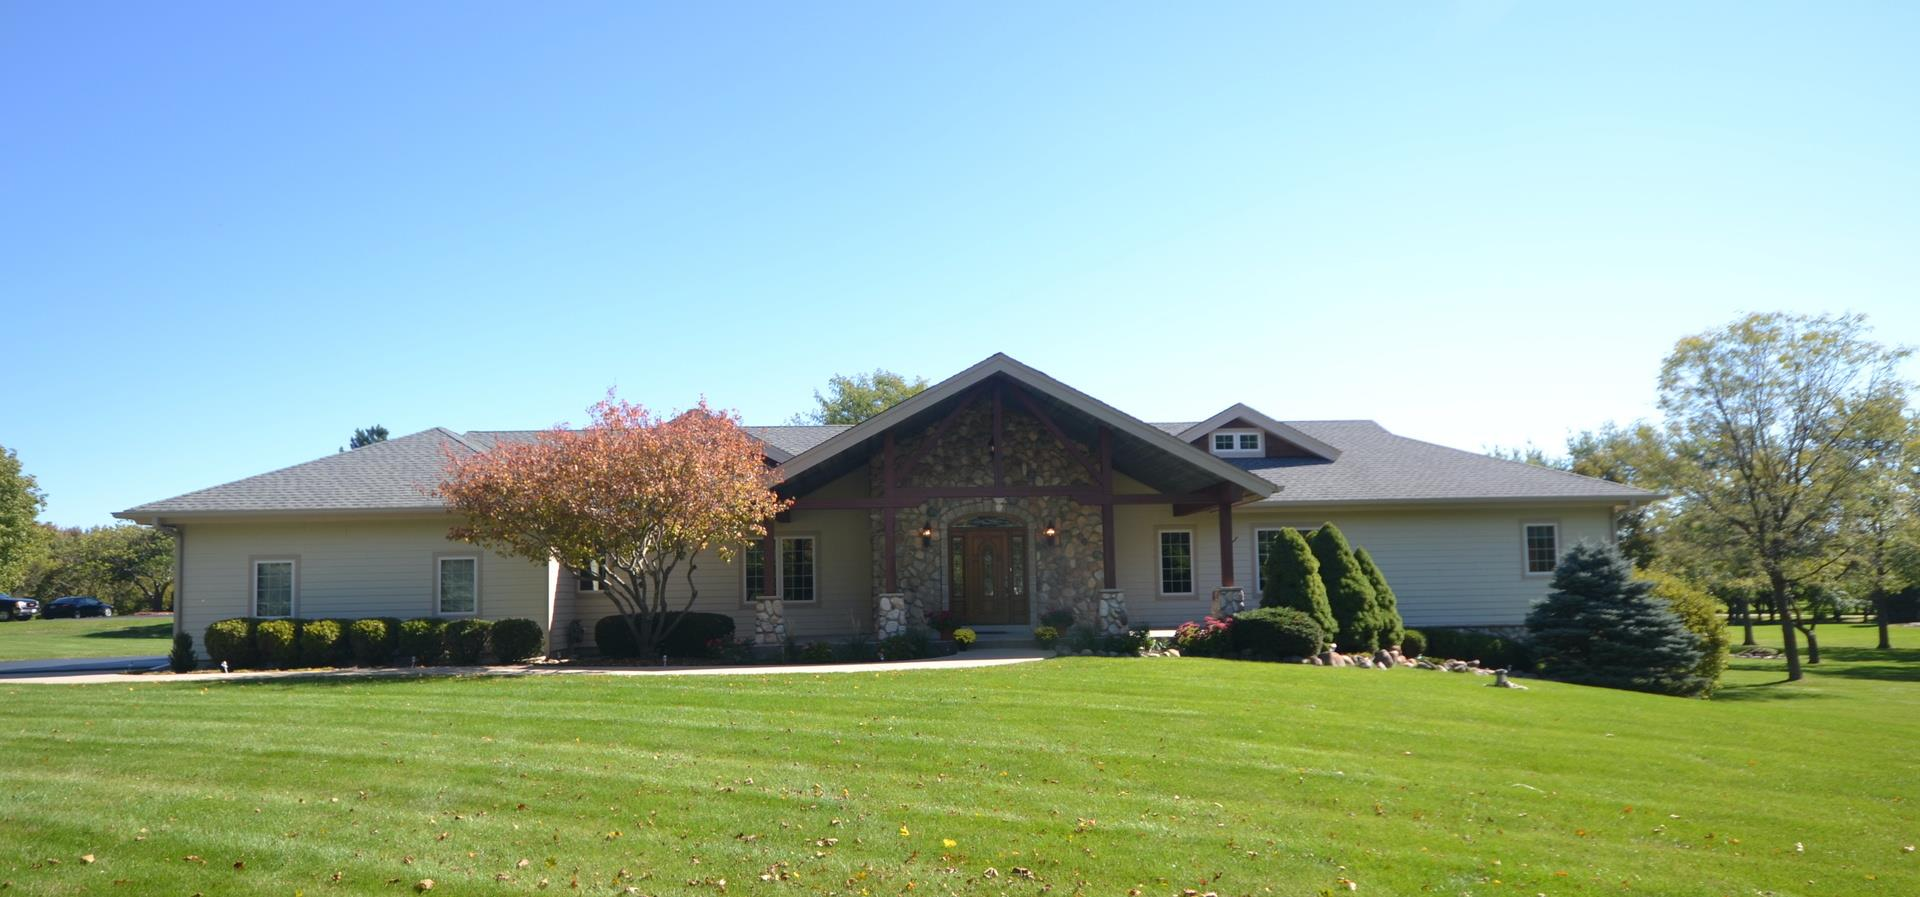 2410 Timberline Trail, Woodstock, IL 60098 - #: 10892292